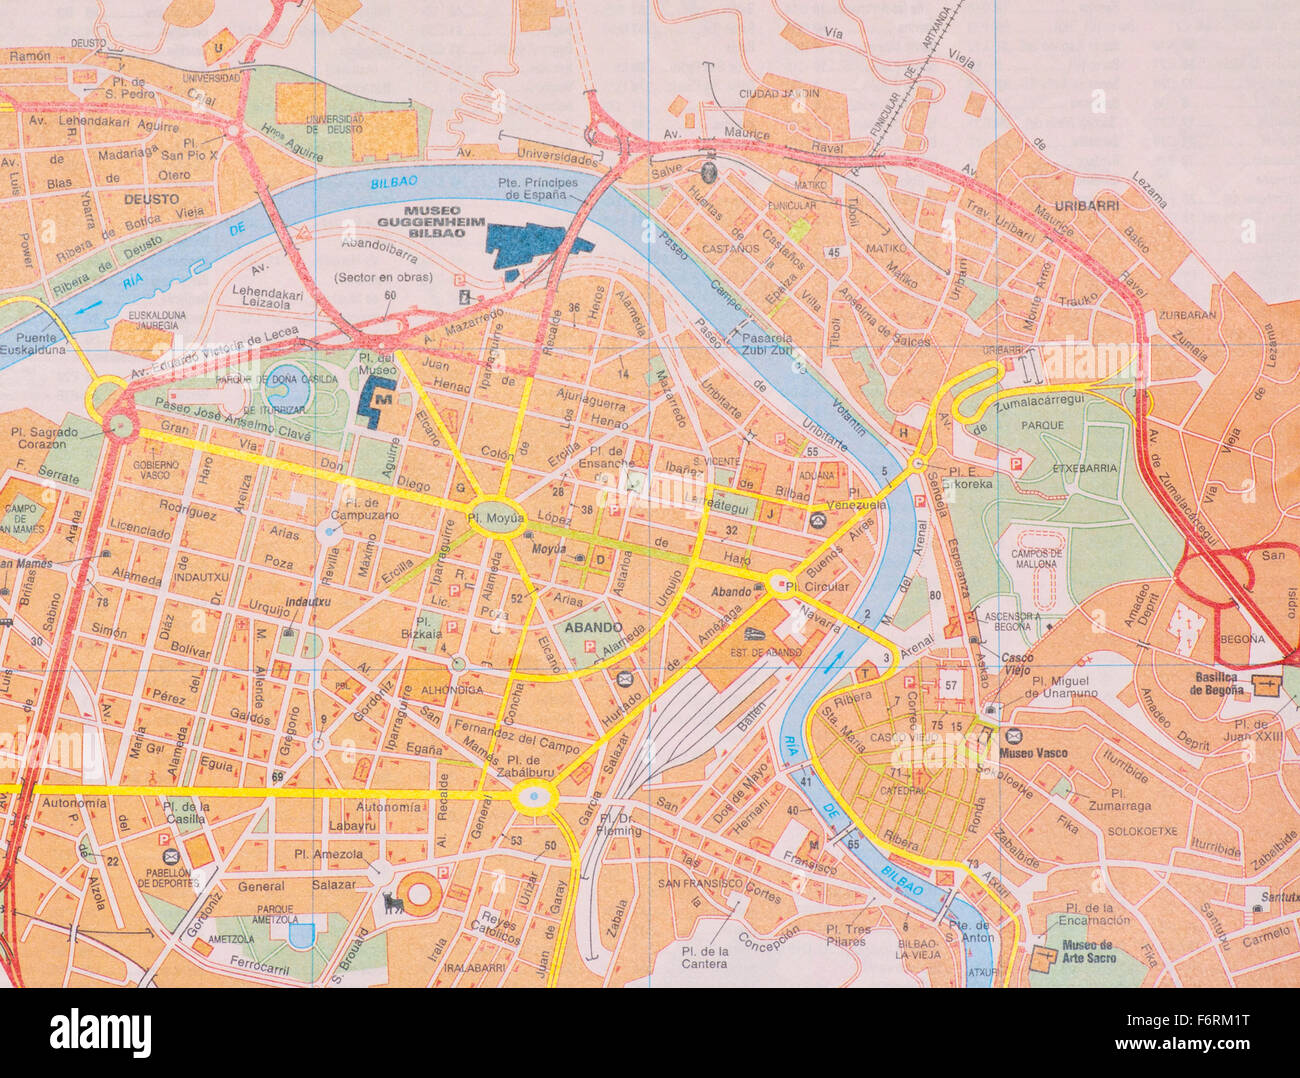 Street map Of The Spanish City Of Bilbao Spain Stock Photo 90260404